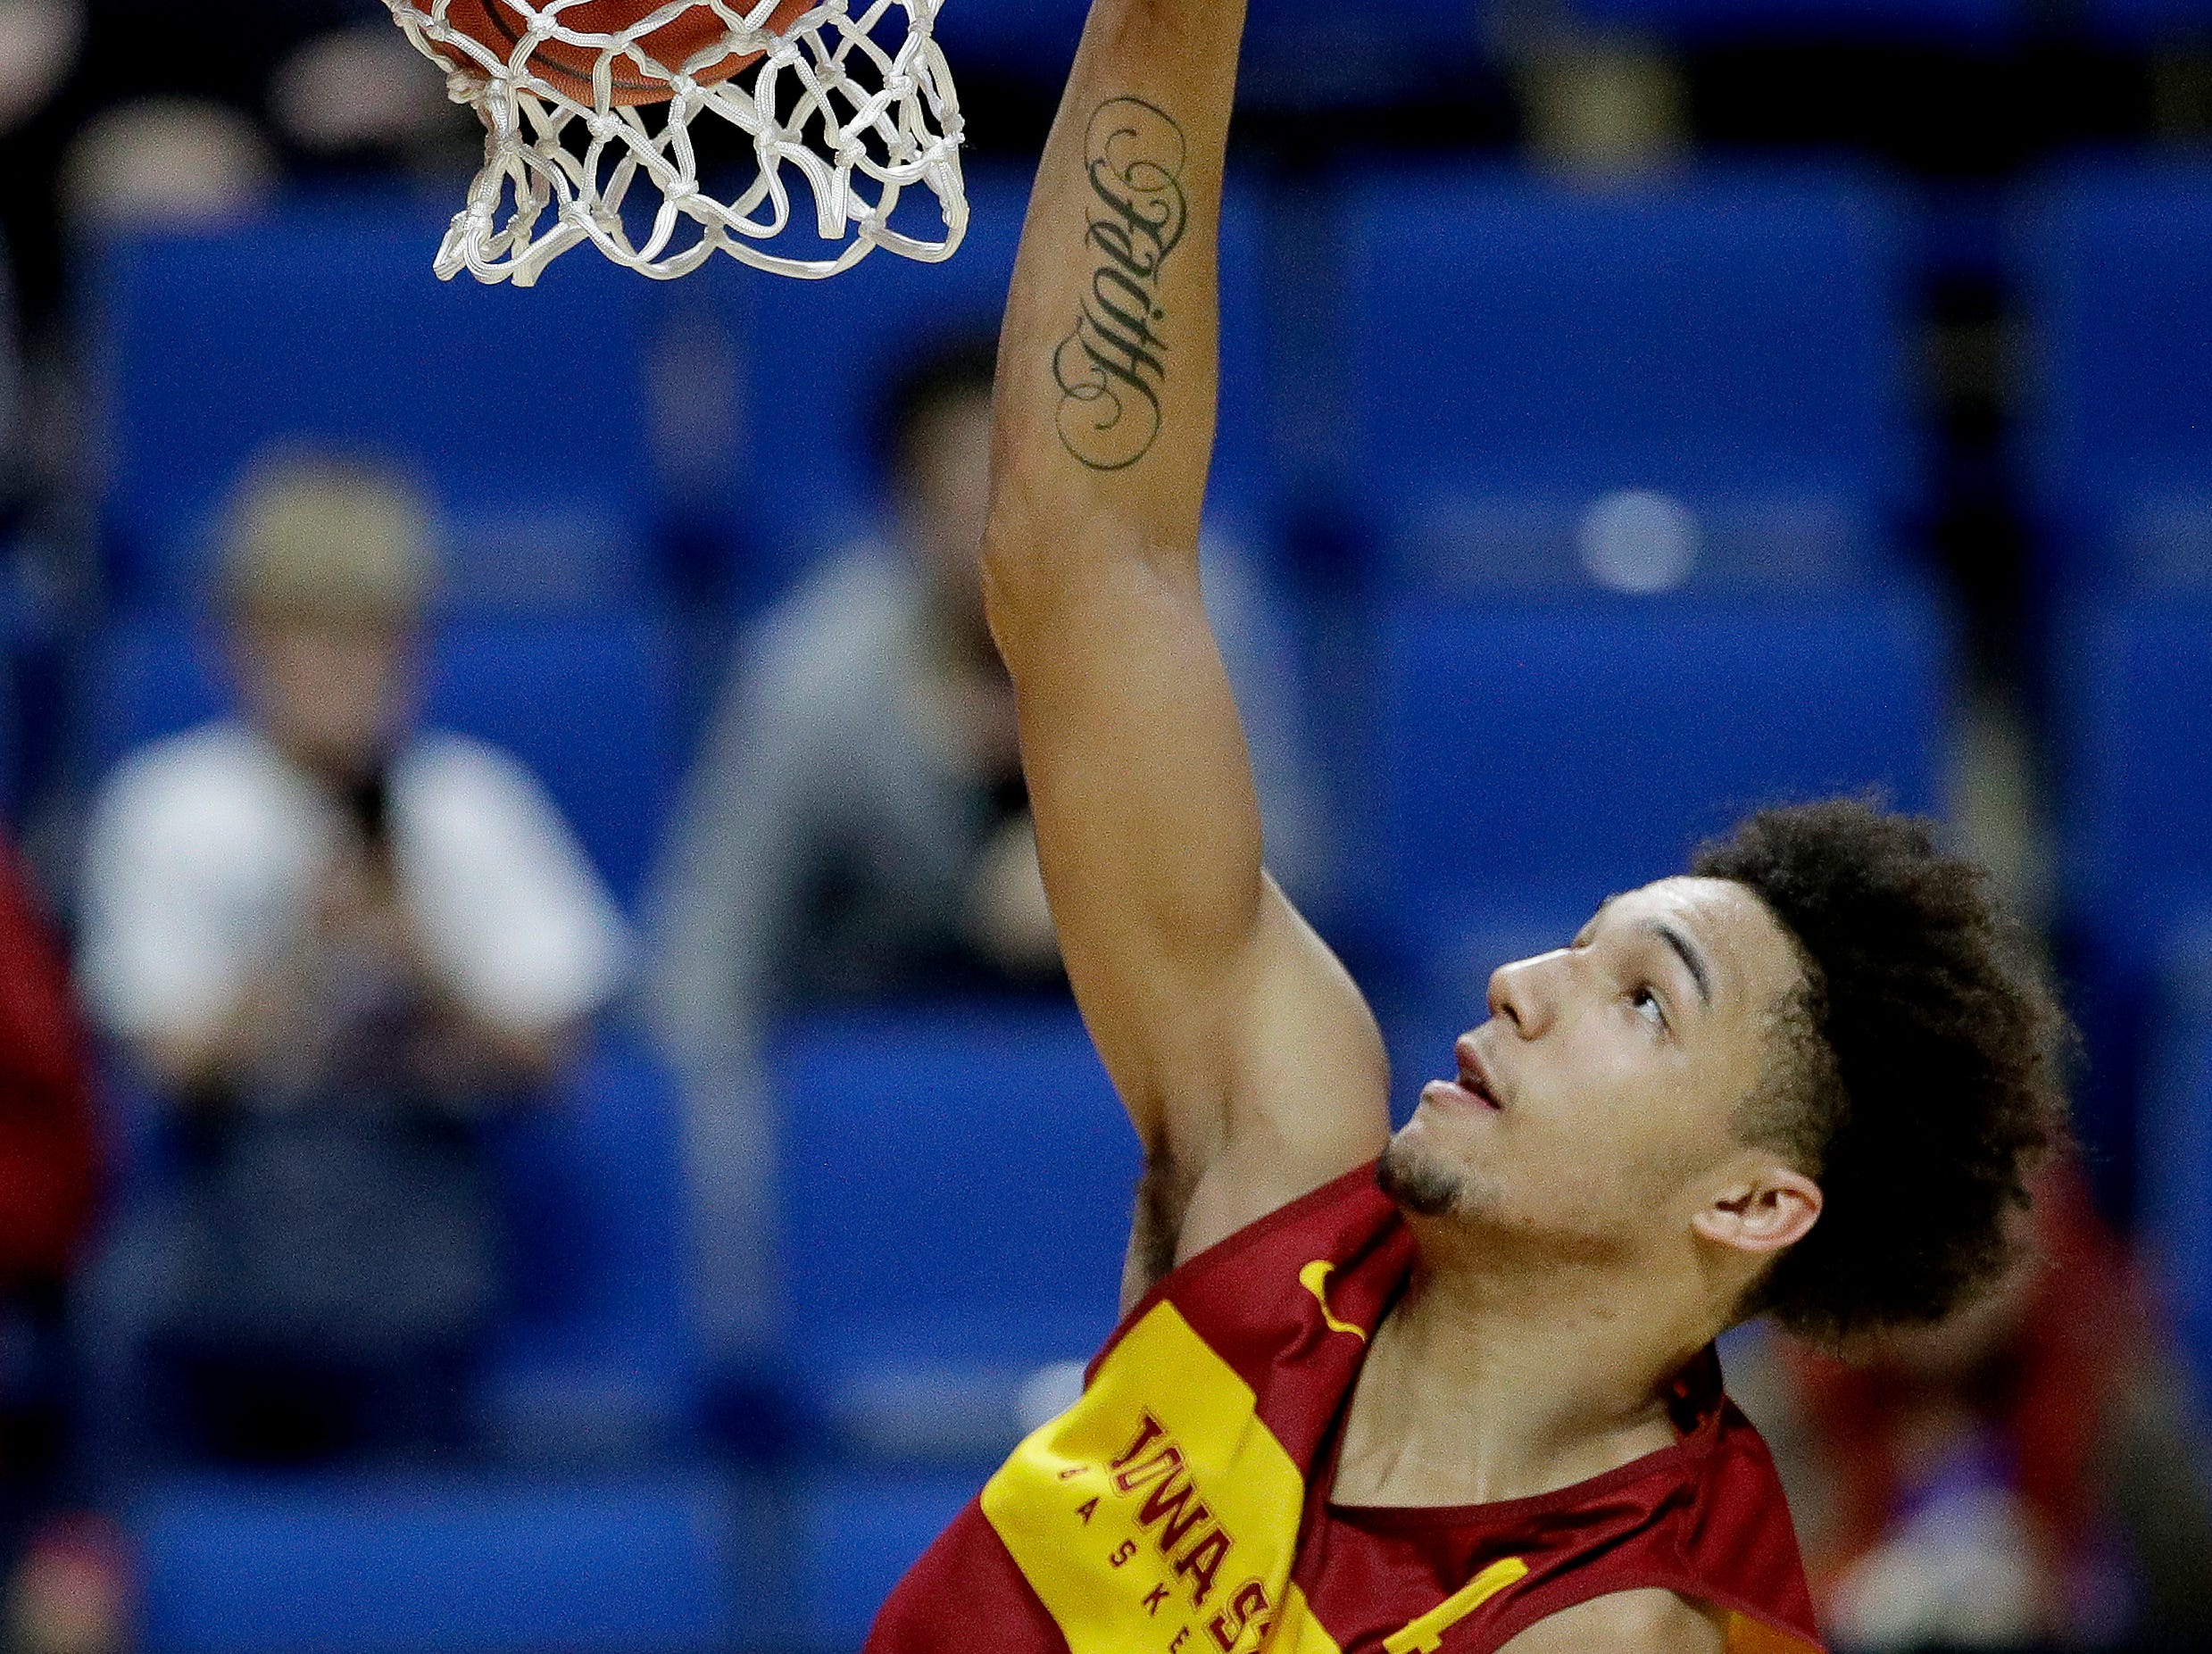 Iowa State's George Conditt IV puts up a shot during practice for the NCAA men's college basketball tournament Thursday, March 21, 2019, in Tulsa, Oklahoma.